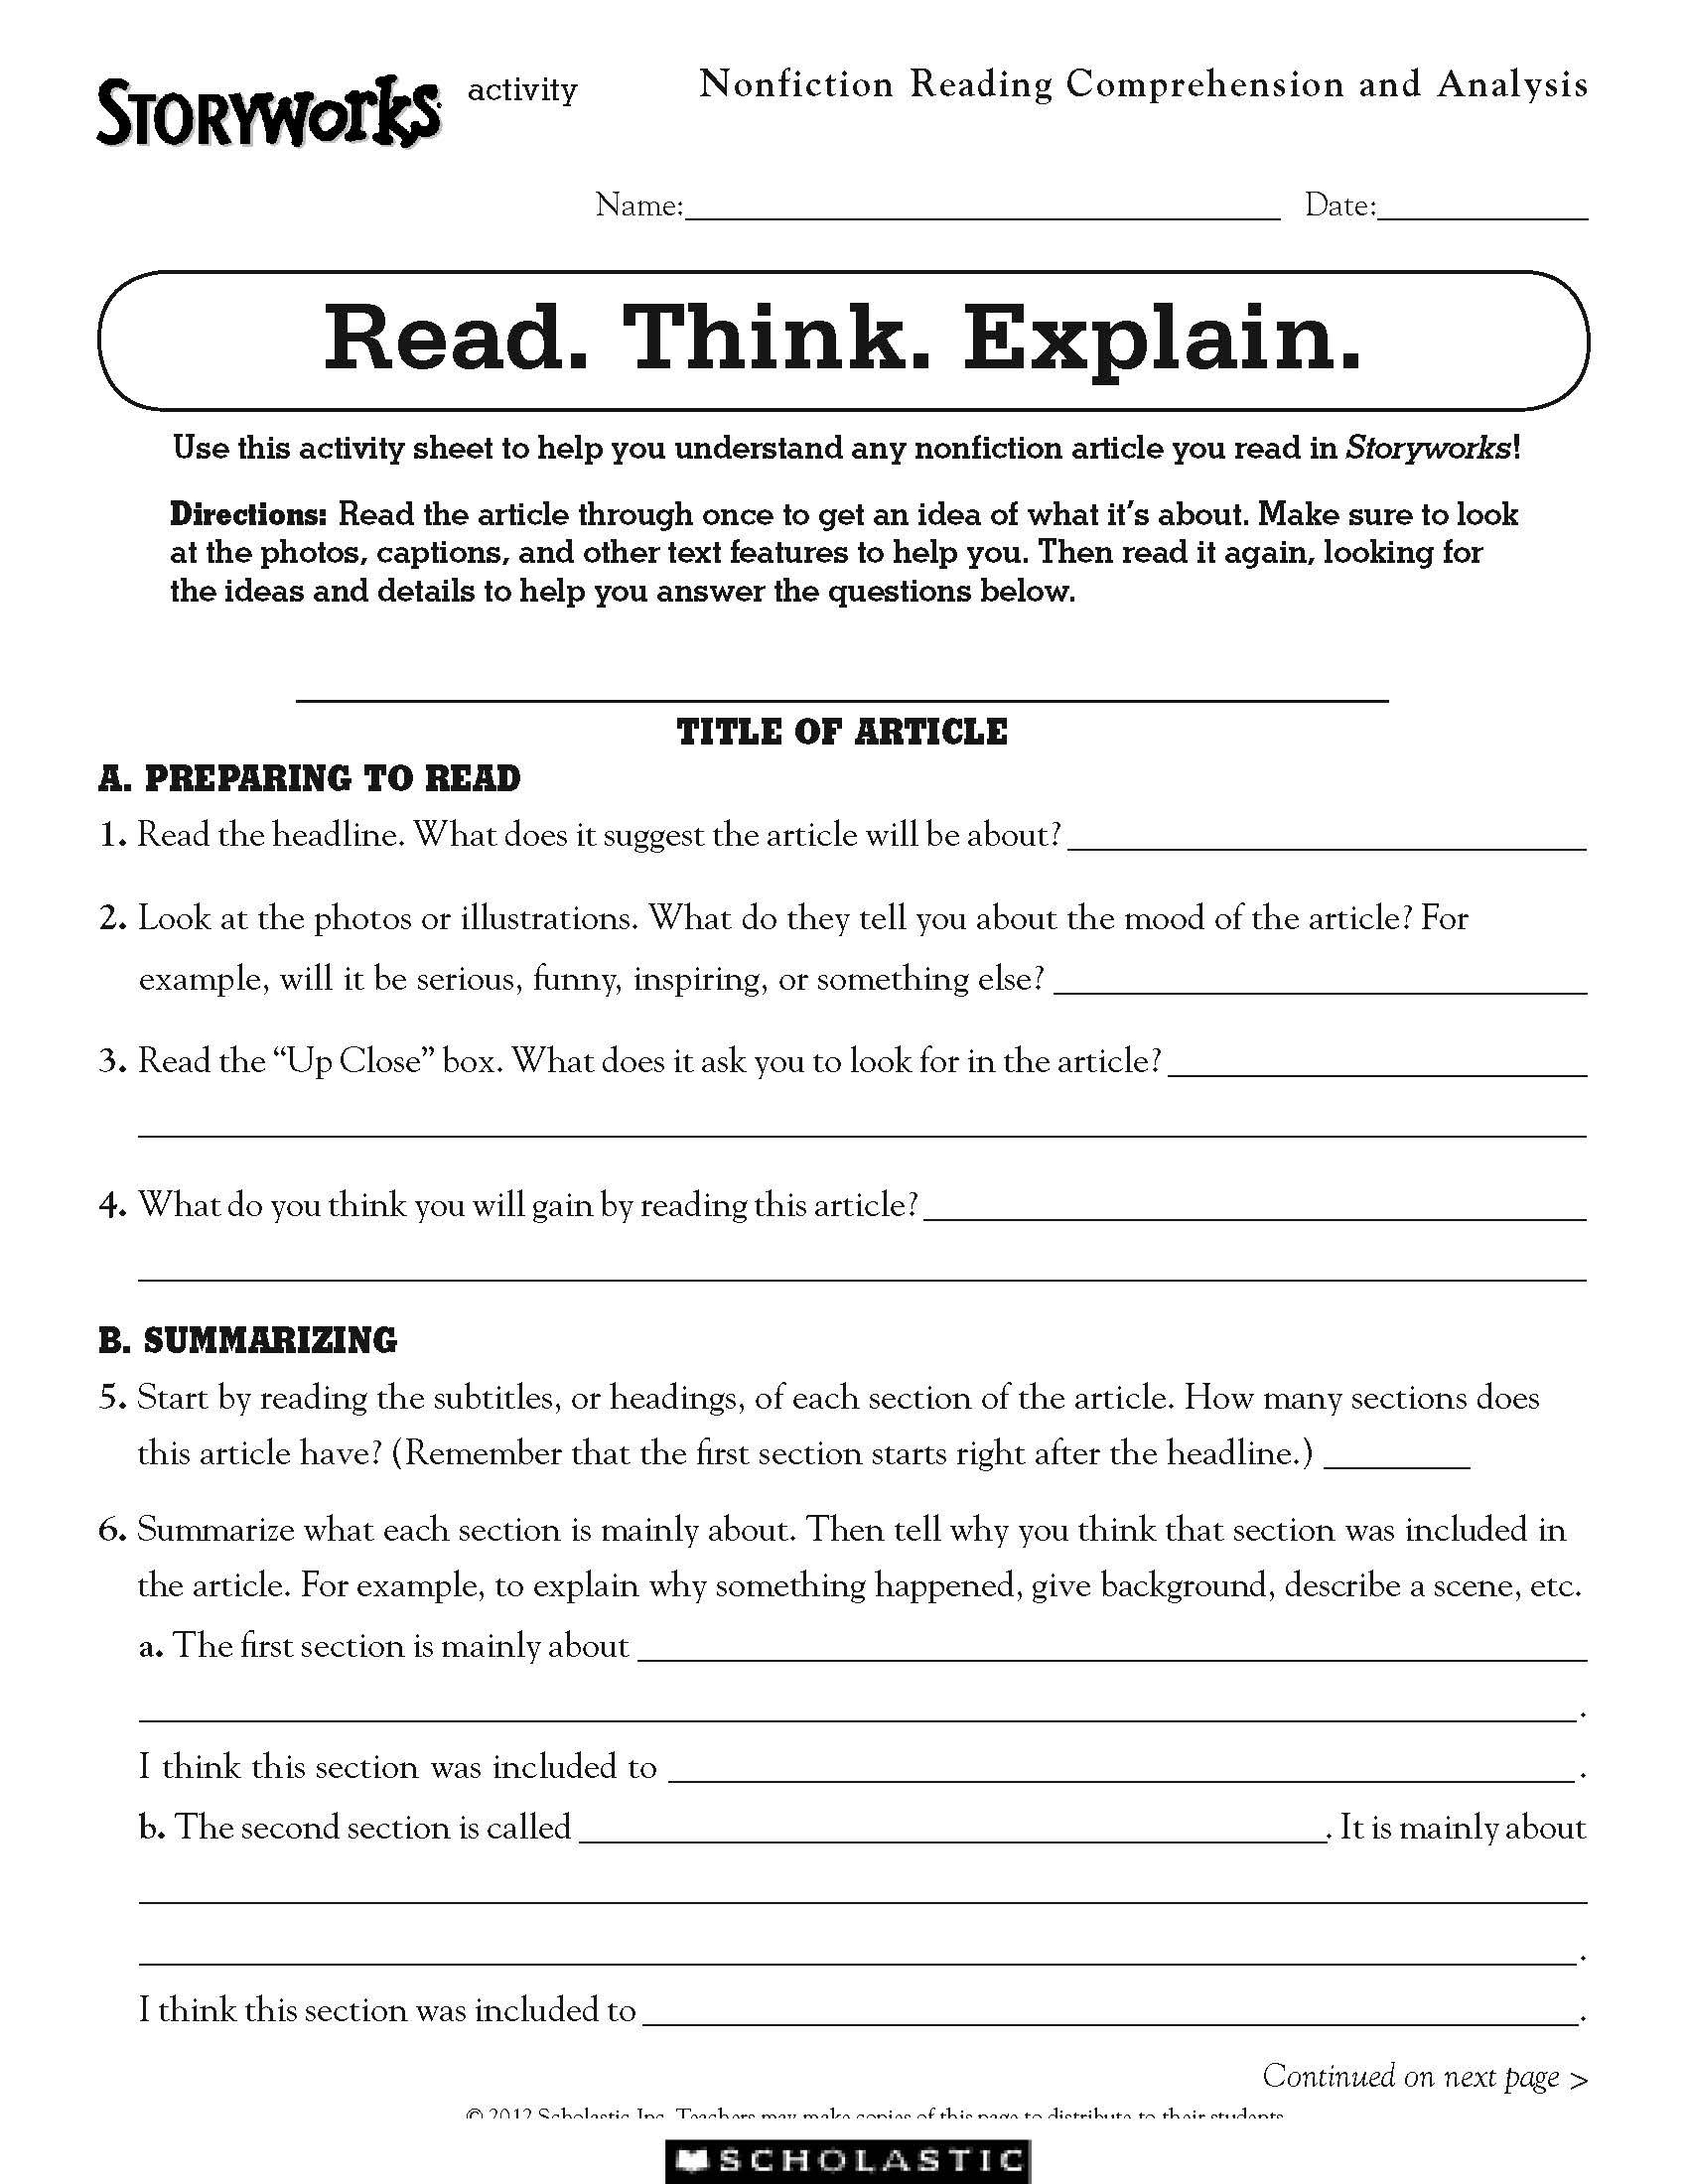 Free Activity For Nonfiction Reading Comprehension